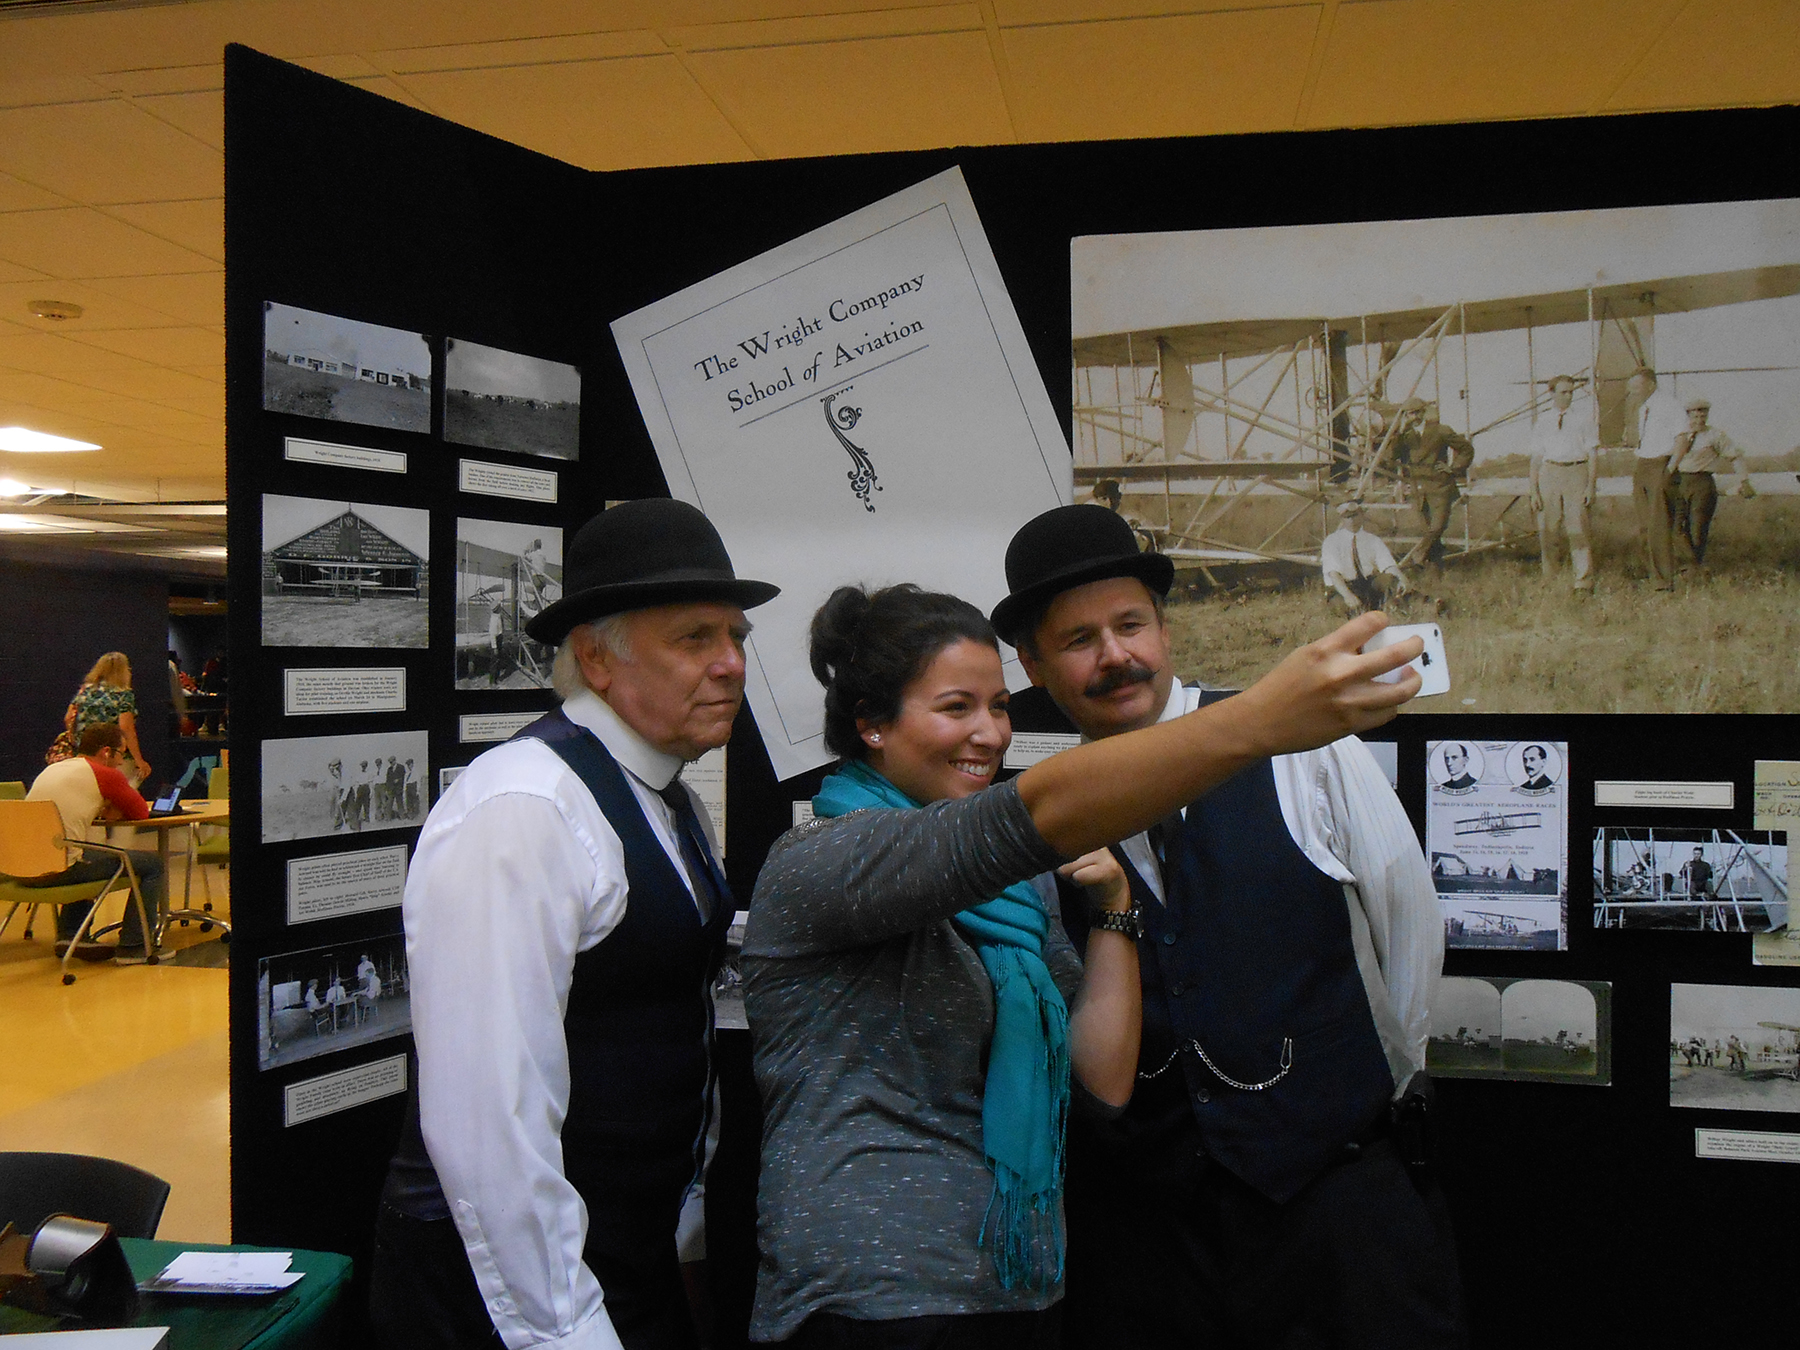 Public History grad student Susie Lang taking a selfie with Wilbur and Orville Wright at the 2014 Wright Brothers Day.